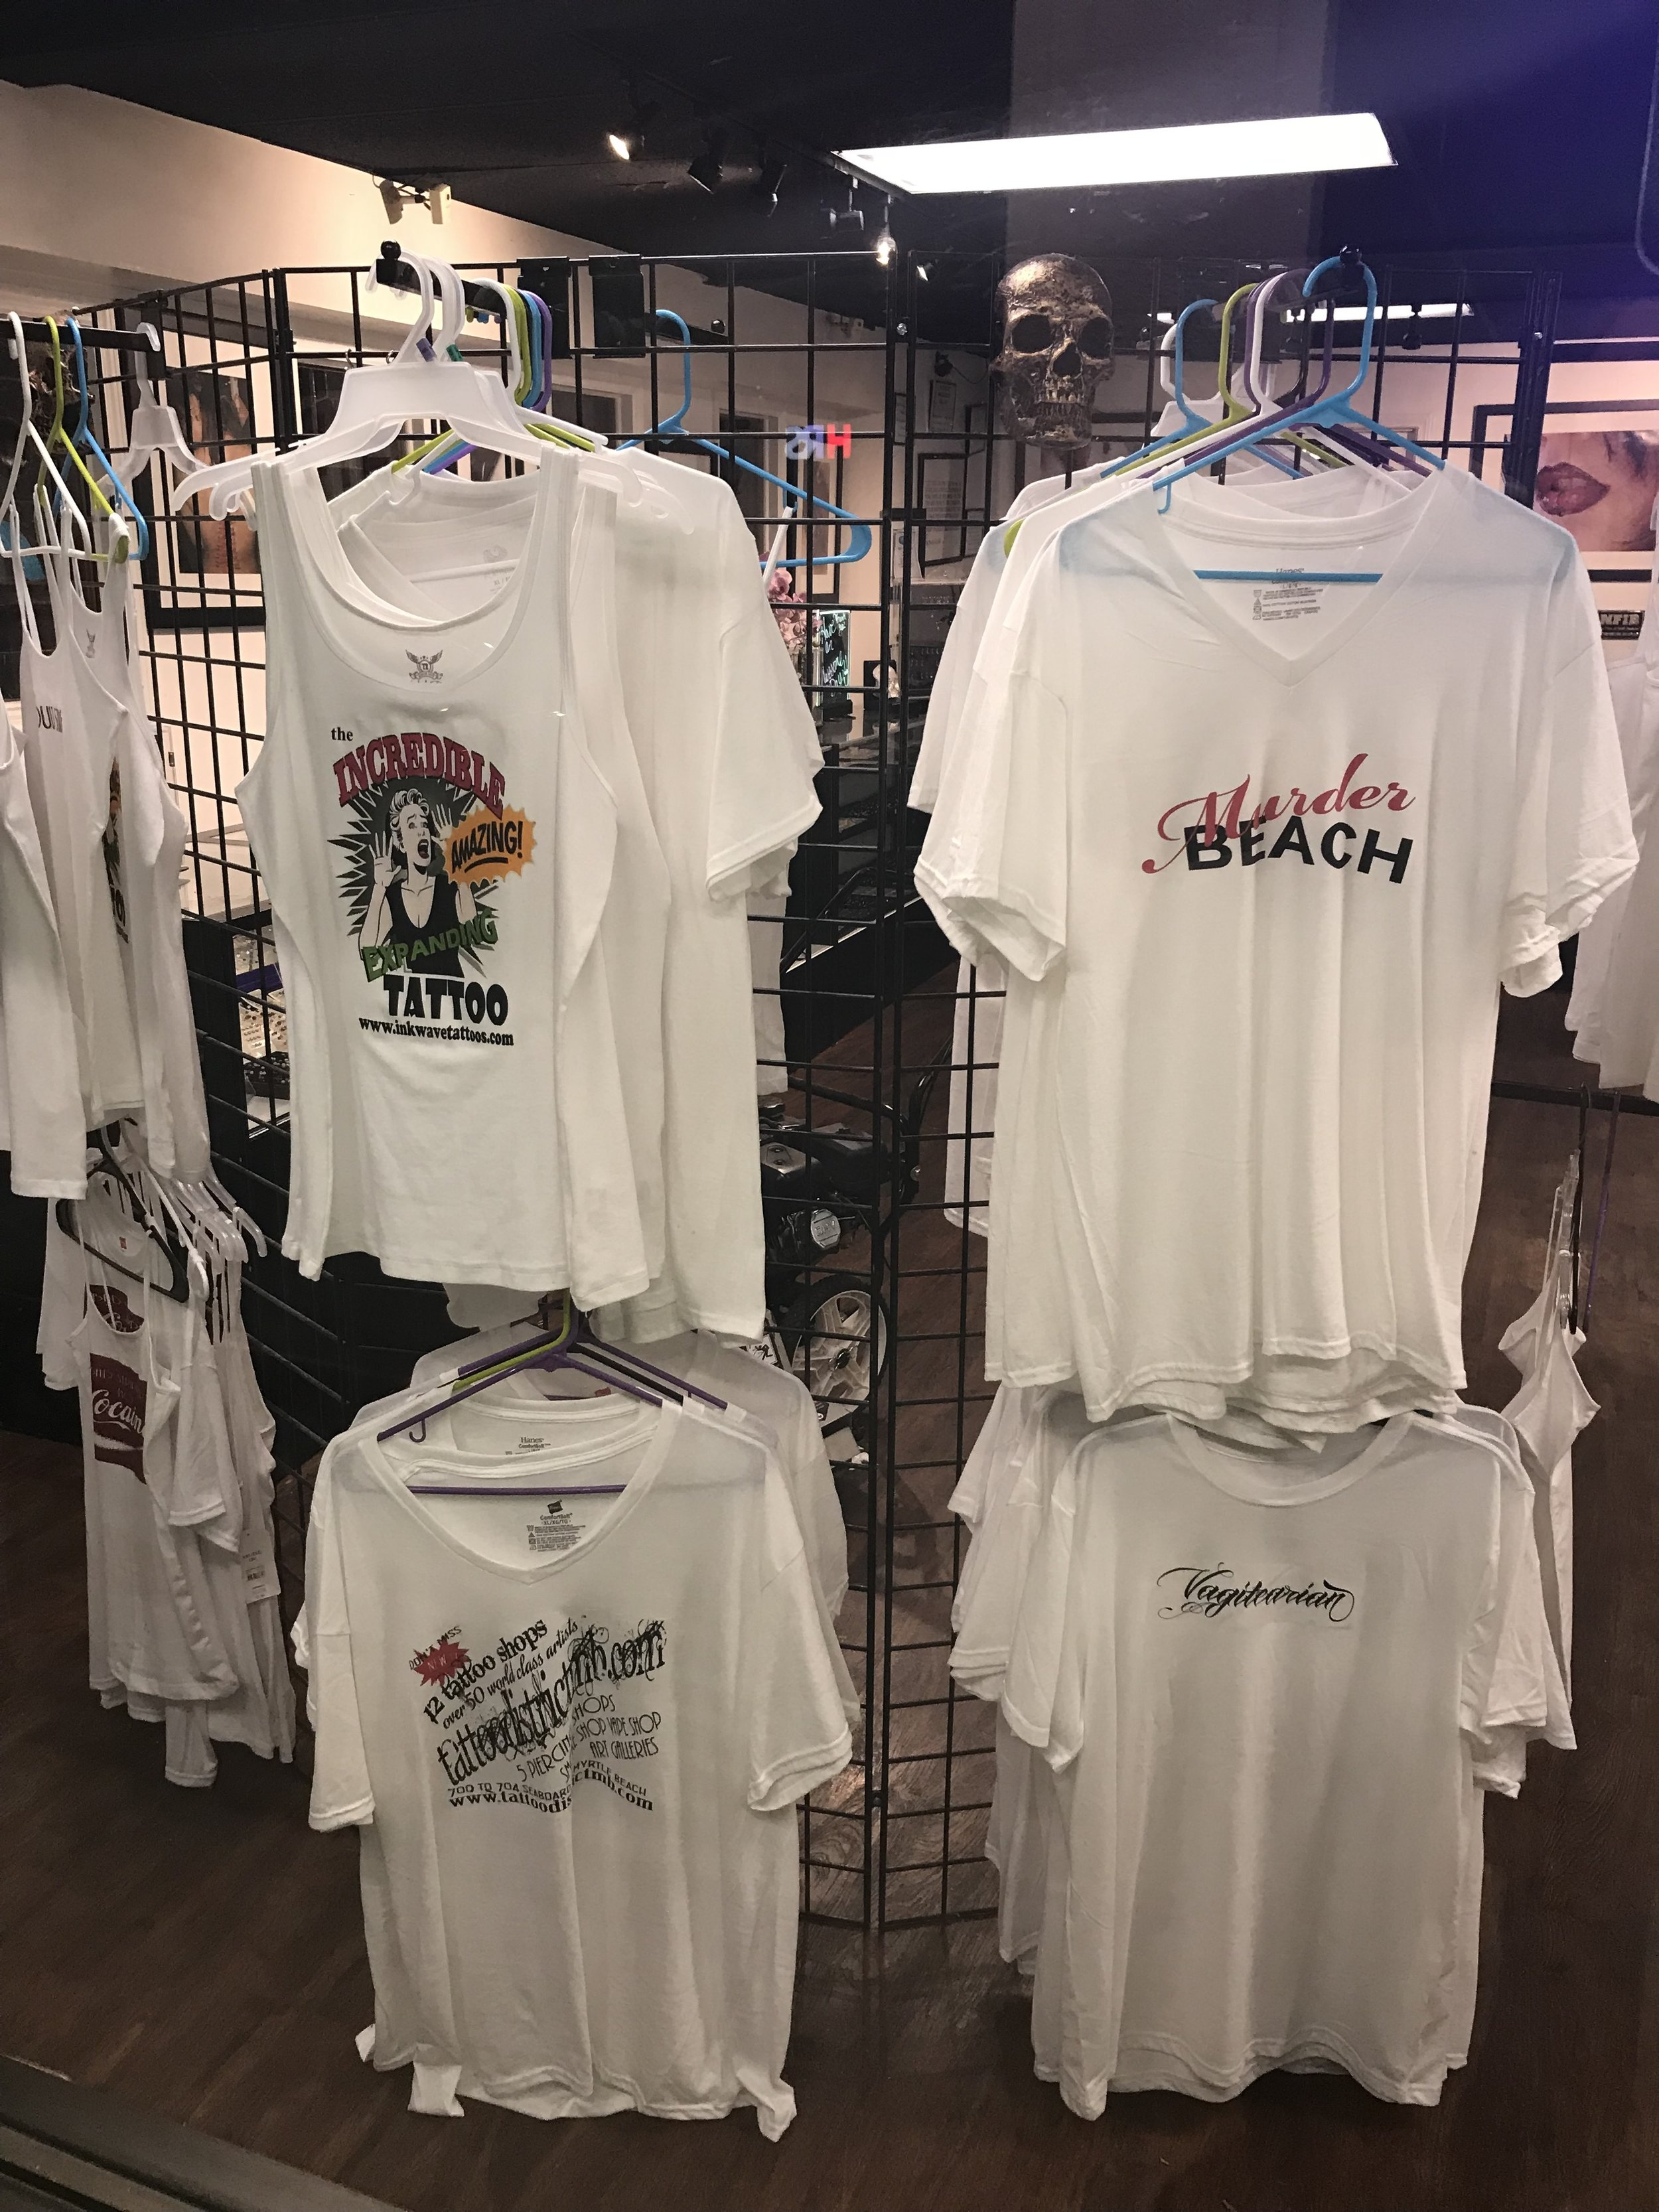 COME CHECK OUT OUR SHOP